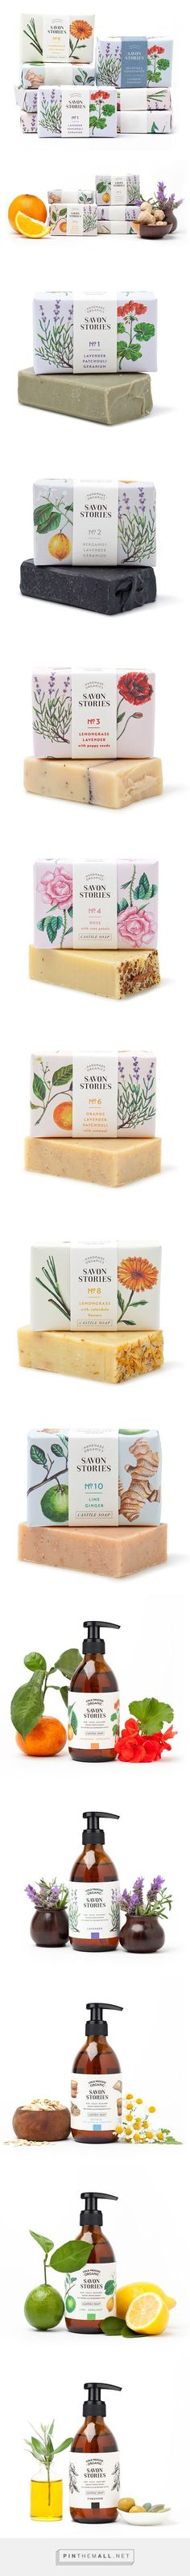 Savon Stories - packaging design